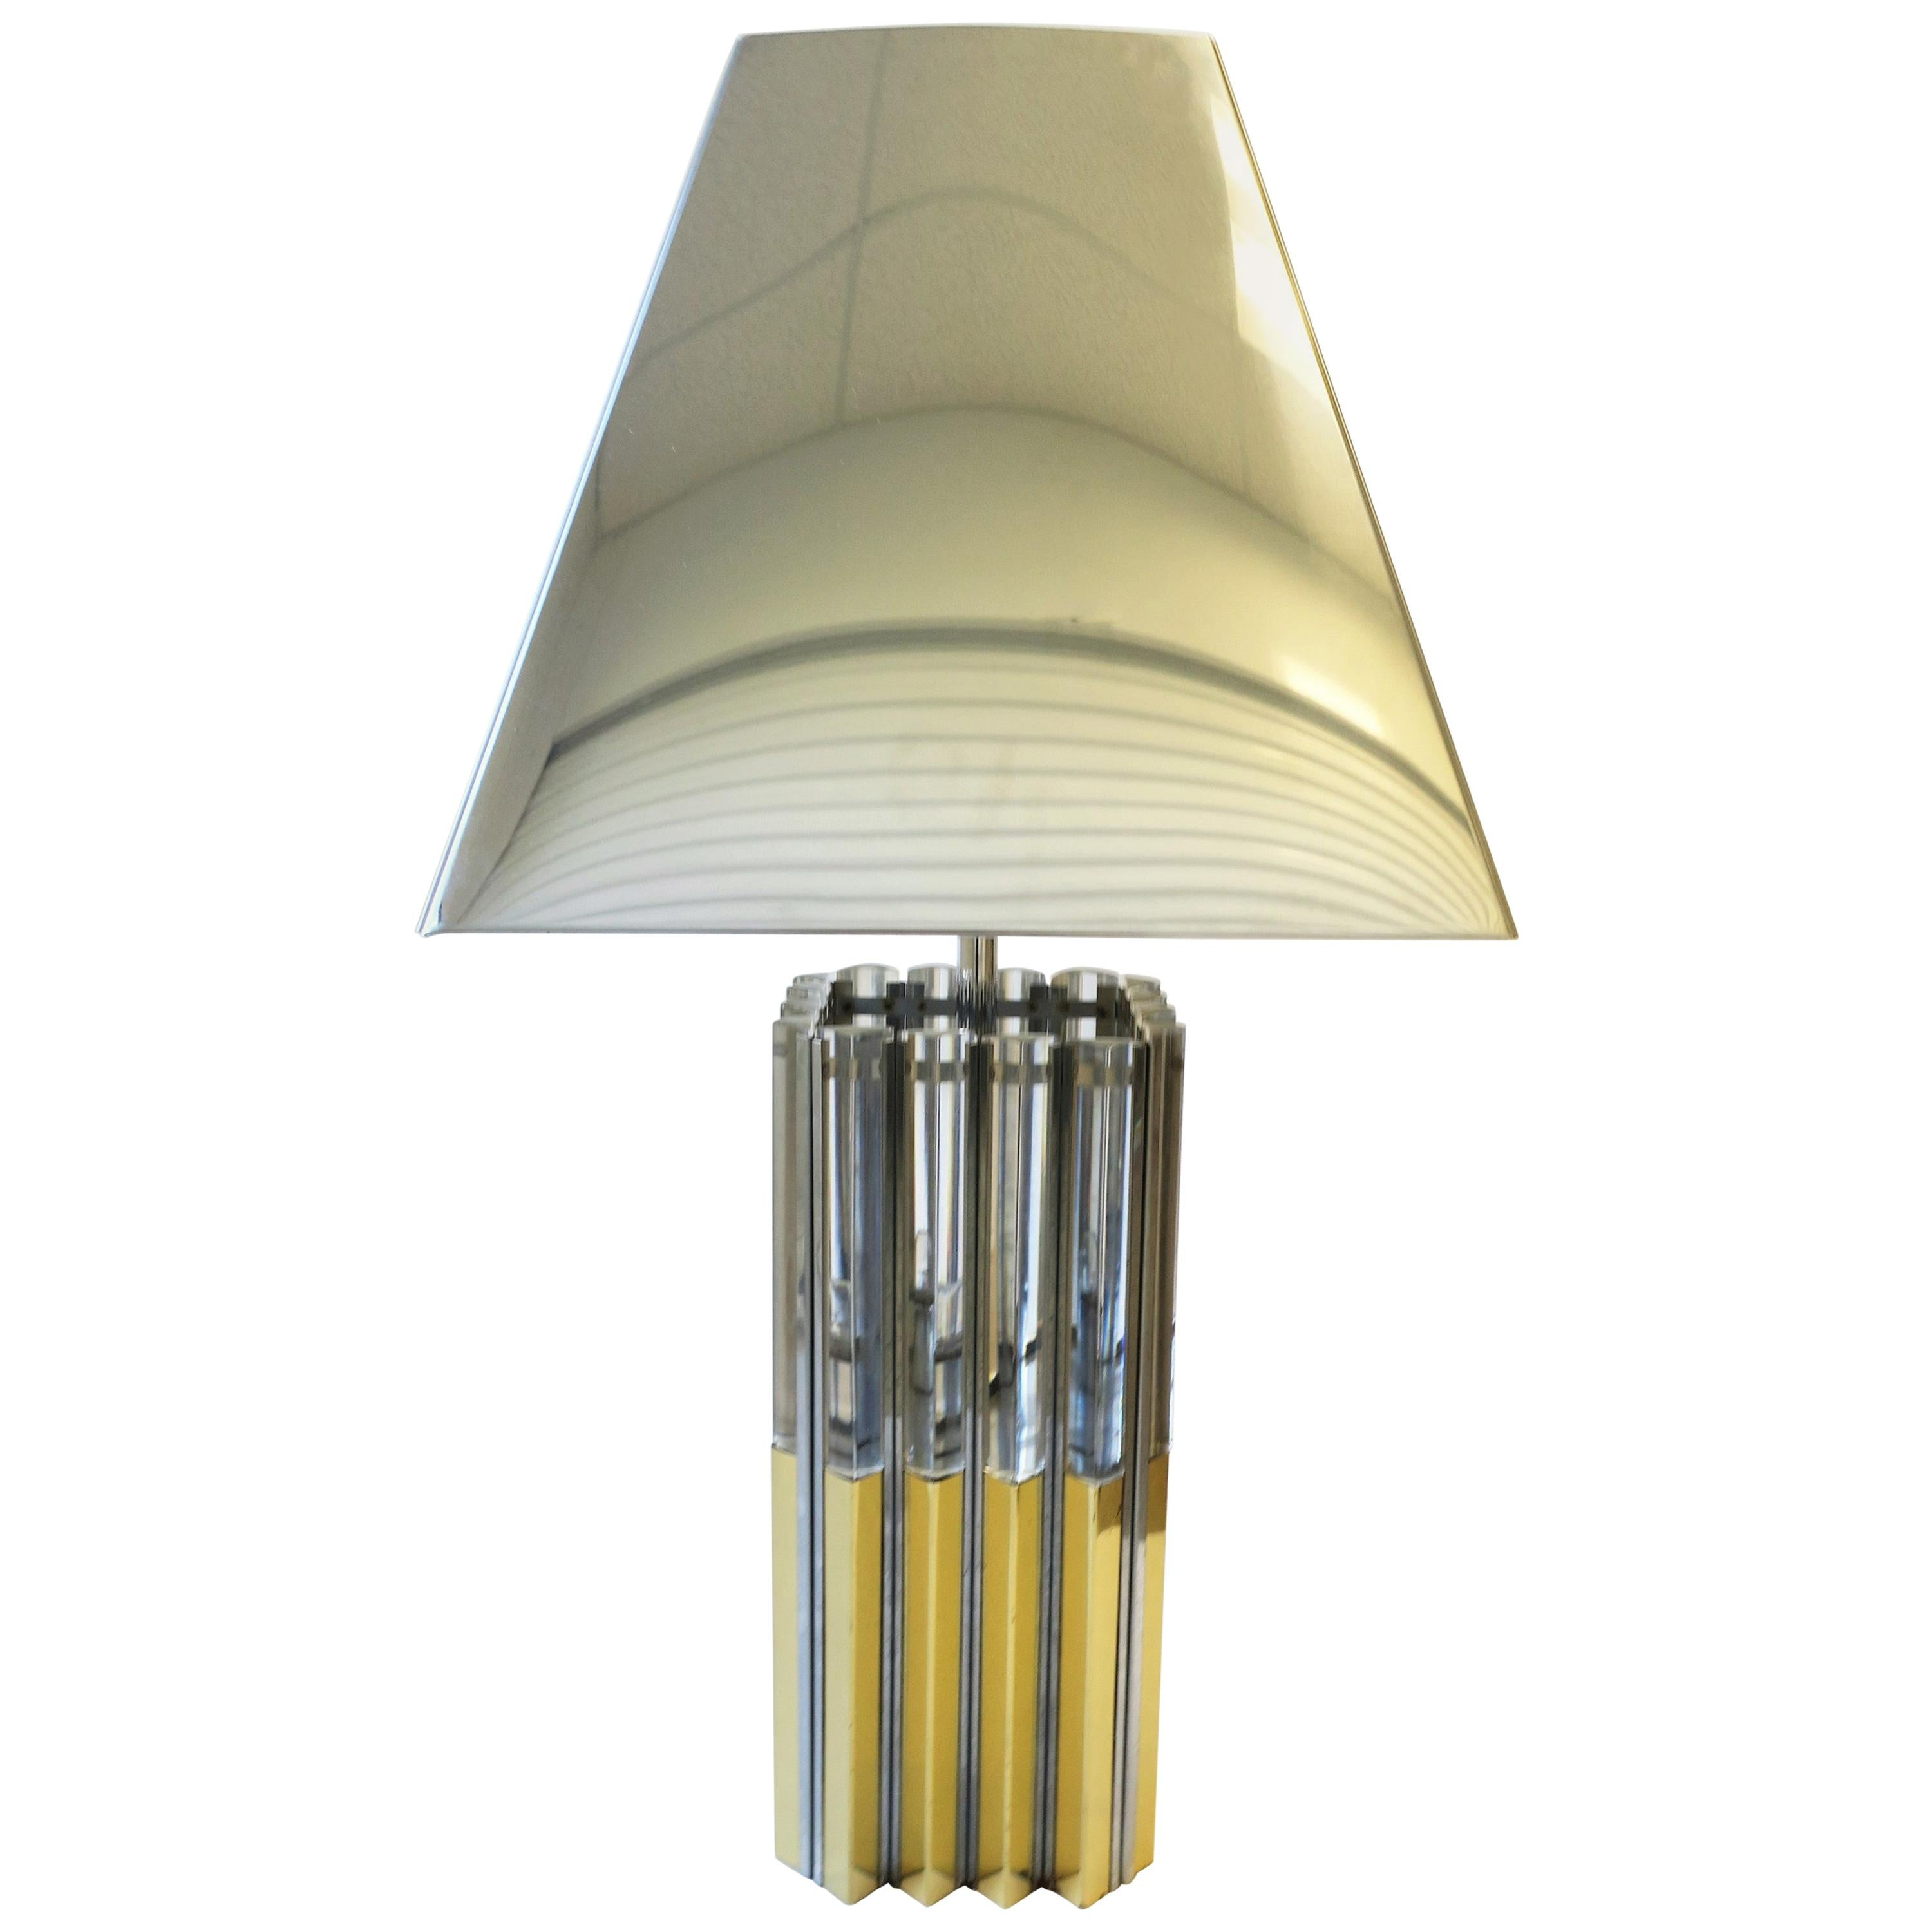 Modern Brass, Chrome, and Lucite, Table Lamp, circa 1970s